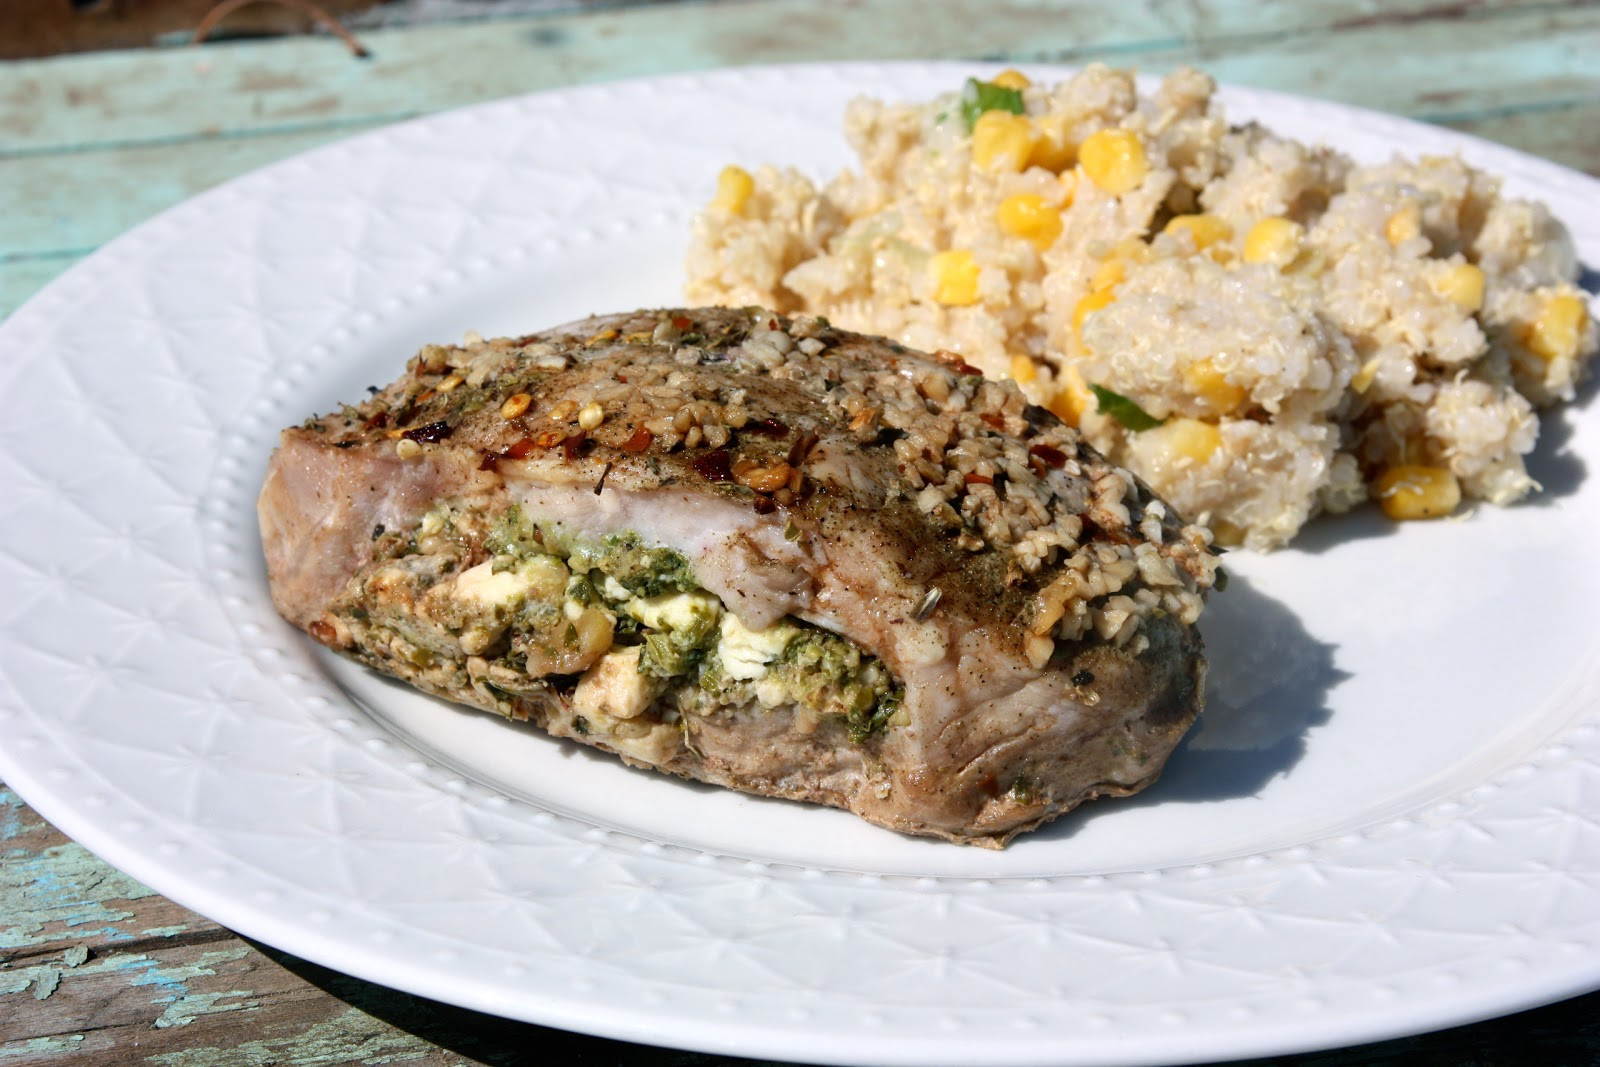 Thyme-Rubbed Pork Chops With Pesto Recipes — Dishmaps